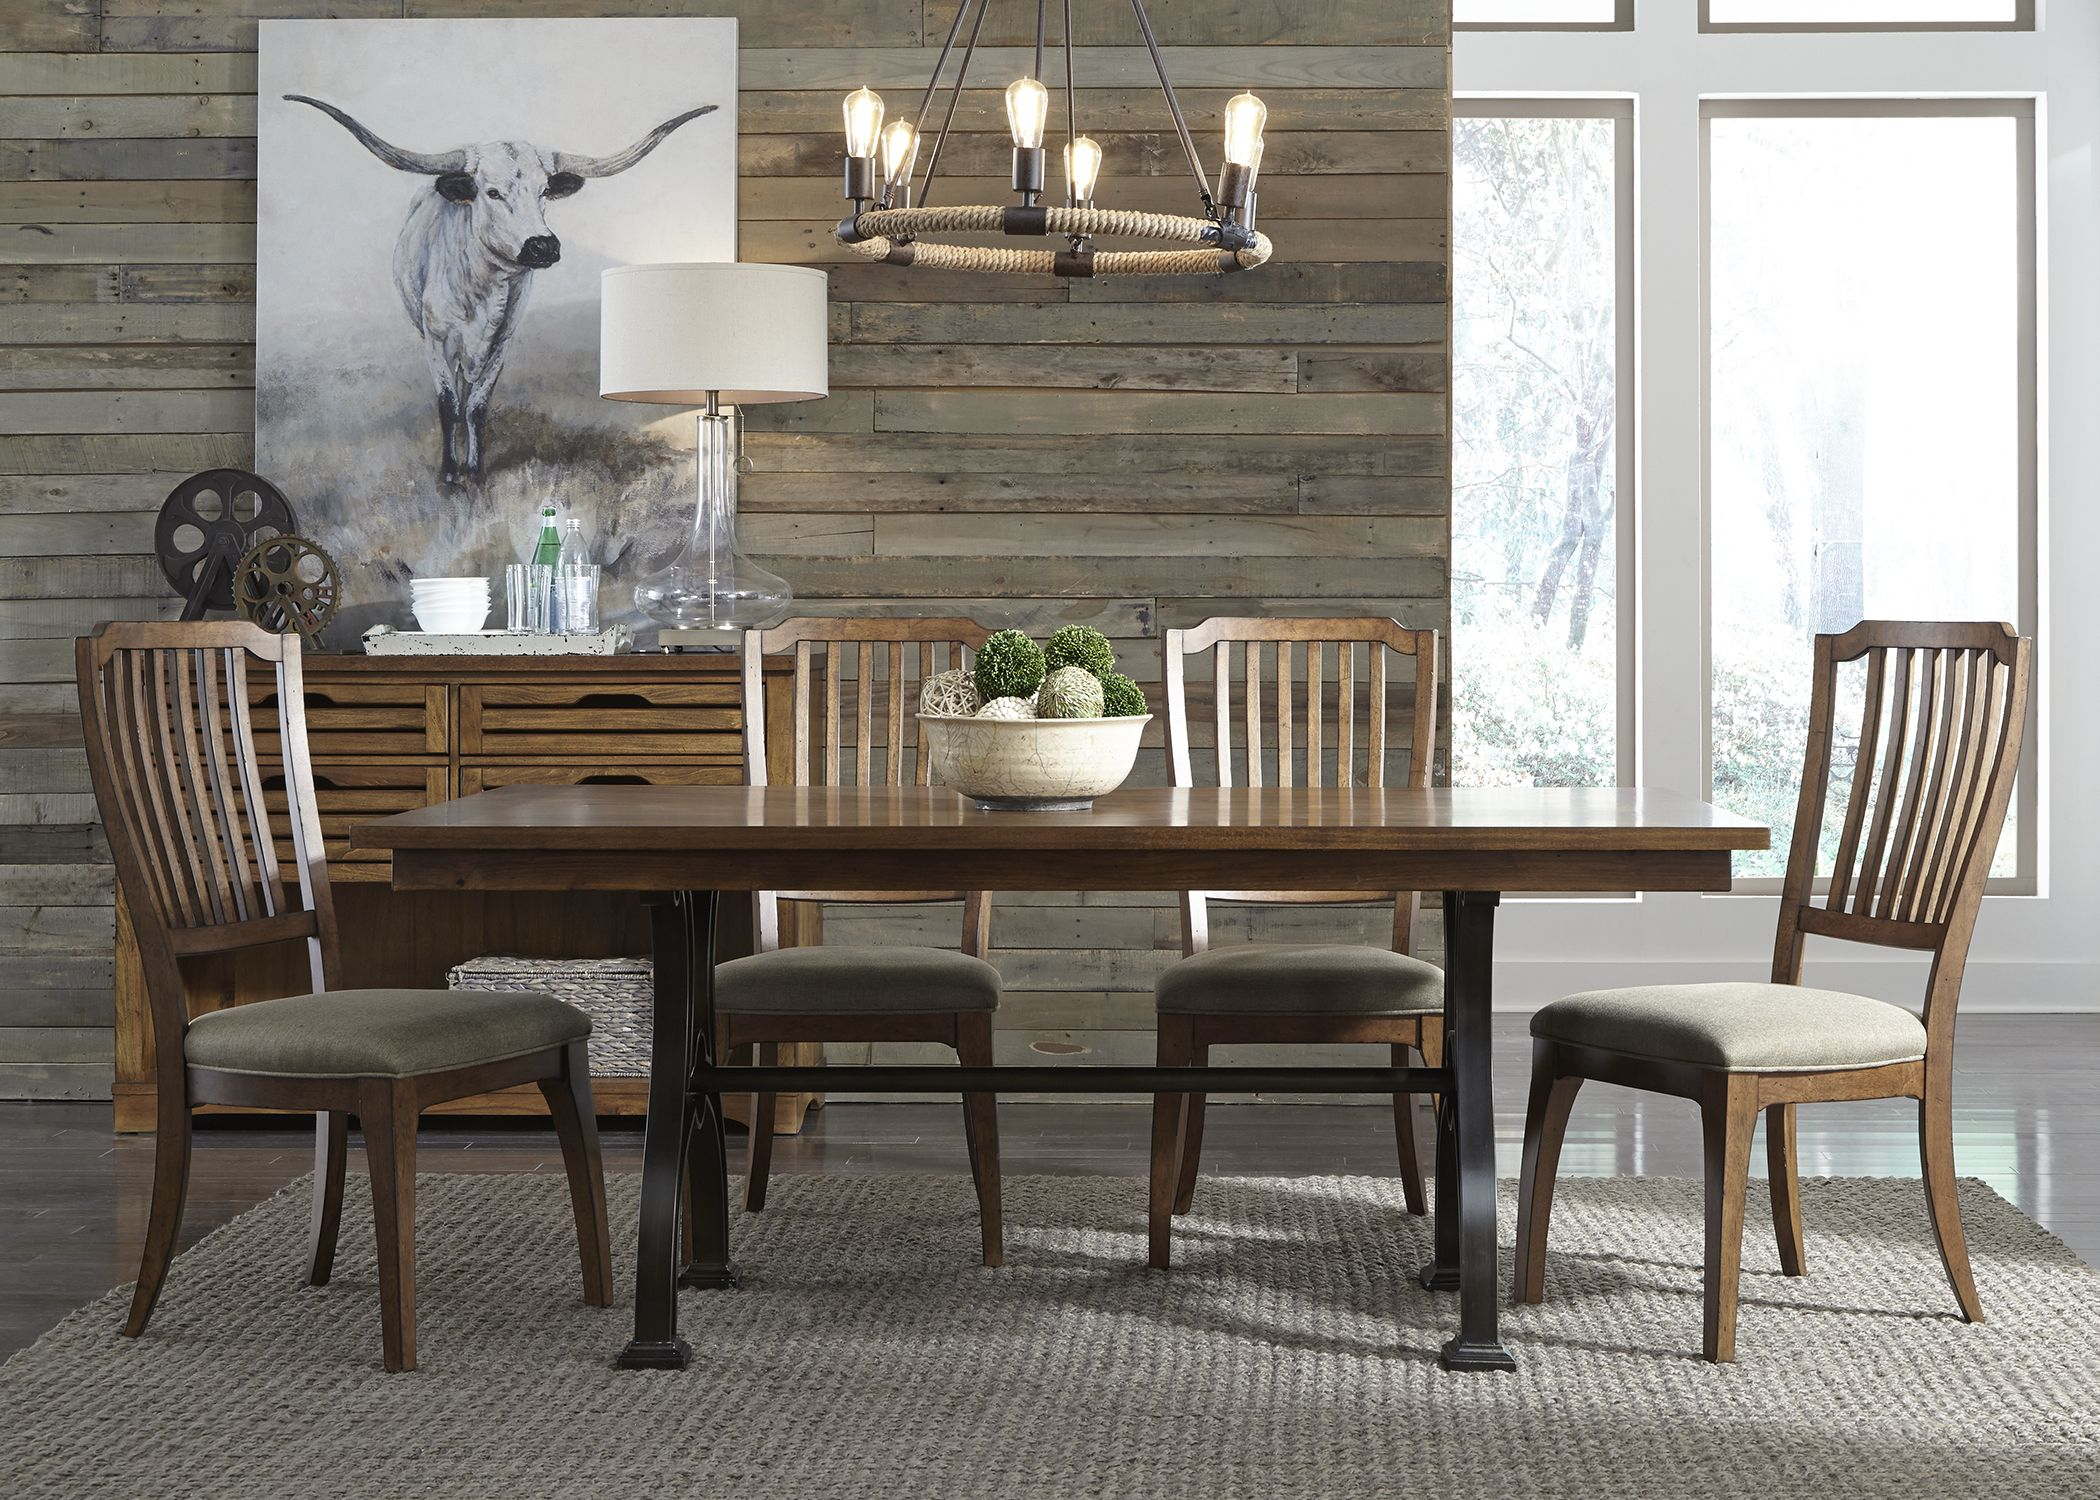 411 C4001S 2 Arlington House, Liberty Furniture, Trestle Dining Tables,  Dining